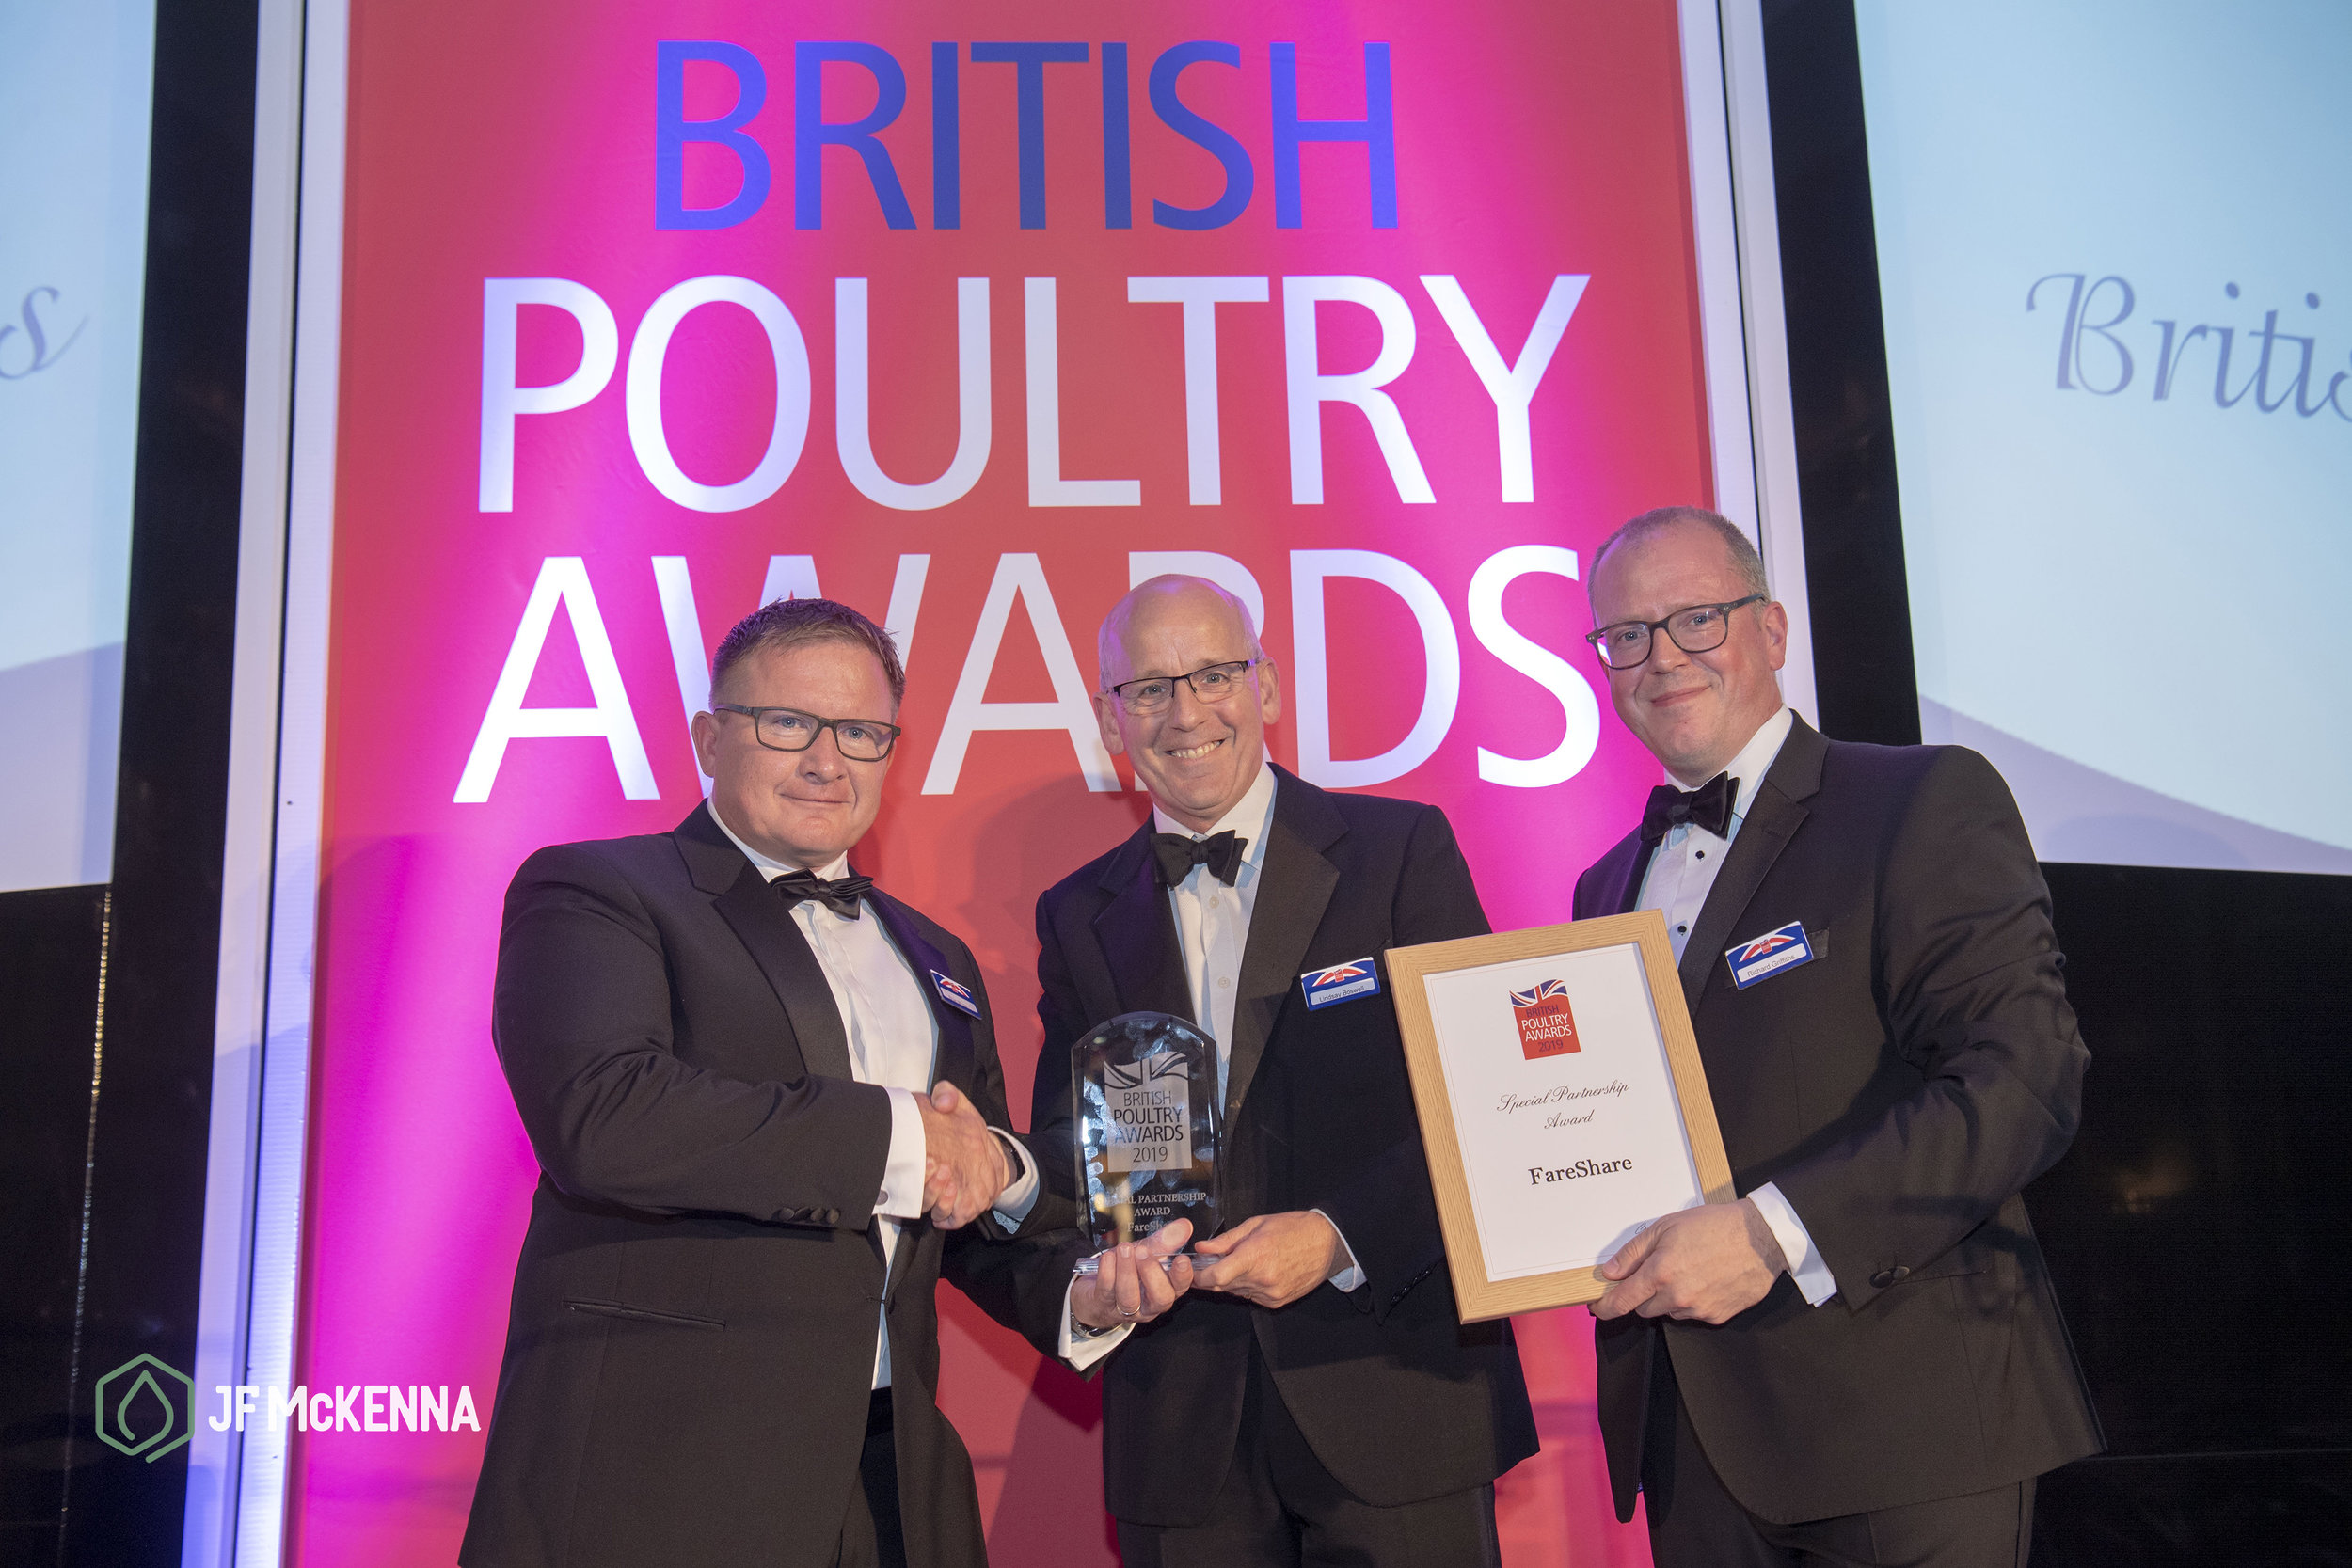 JF McKenna's Brian Moxon presents the Special Partnership Award to Lindsay Boswell, CEO, Fareshare. Pictured with Richard Griffiths, Chief Executive of the British Poultry Council.